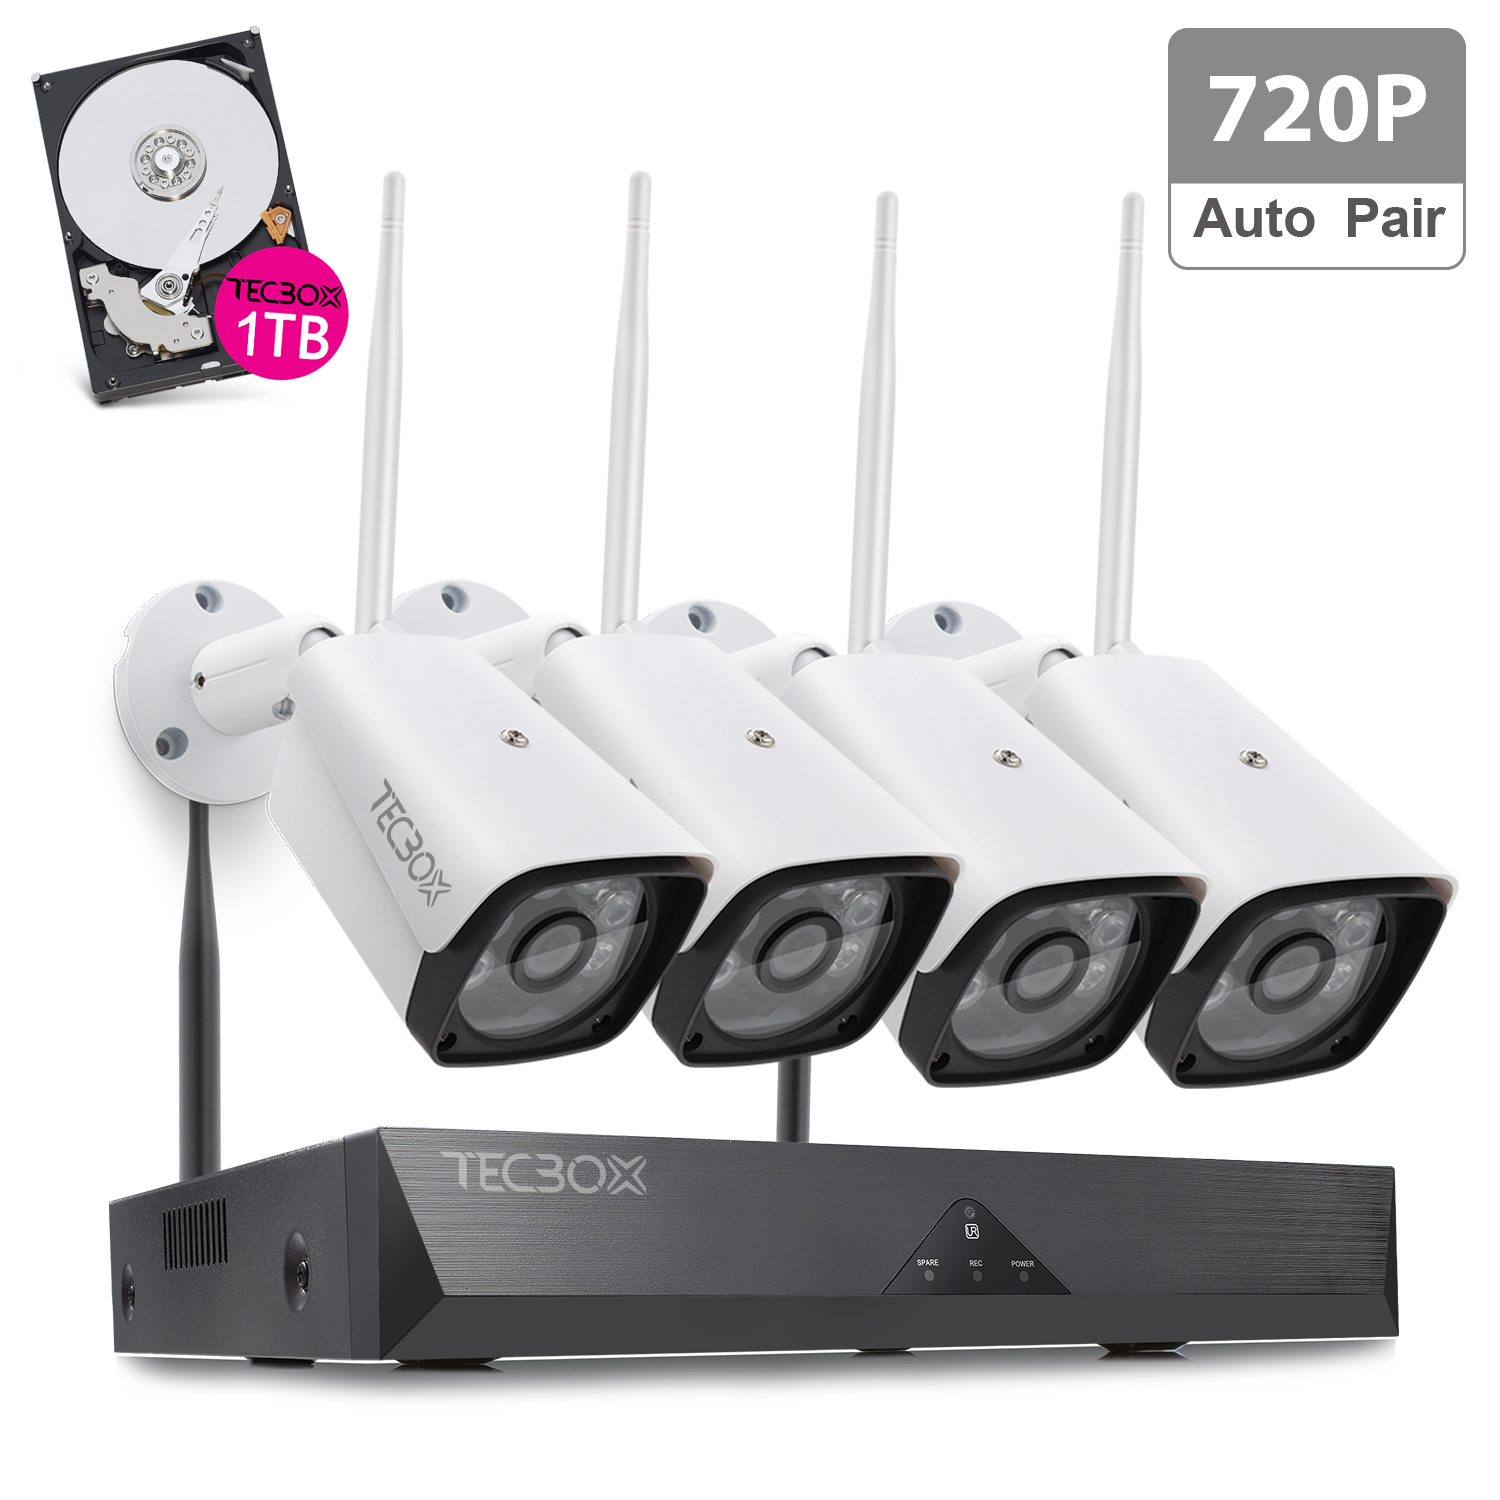 TECBOX 4CH Auto Pair Wireless Security Camera System 720P HDMI NVR, 1TB Hard Drive, 4 x 720P HD Indoor/Outdoor Weatherproof Night Vision Wireless IP Cameras,View Remotely Wifi Security Camera